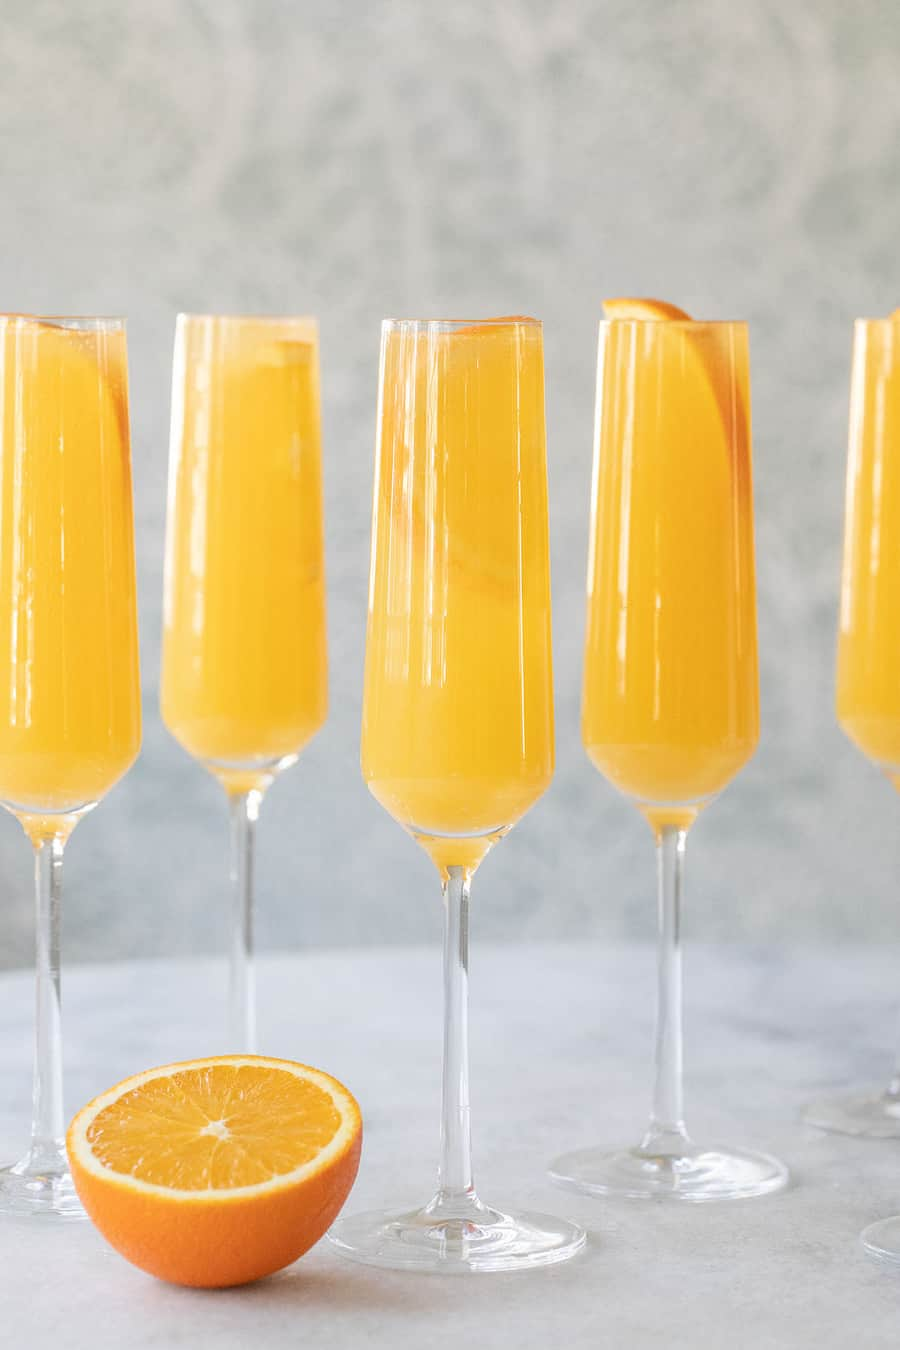 Mimosa in a glass with an orange